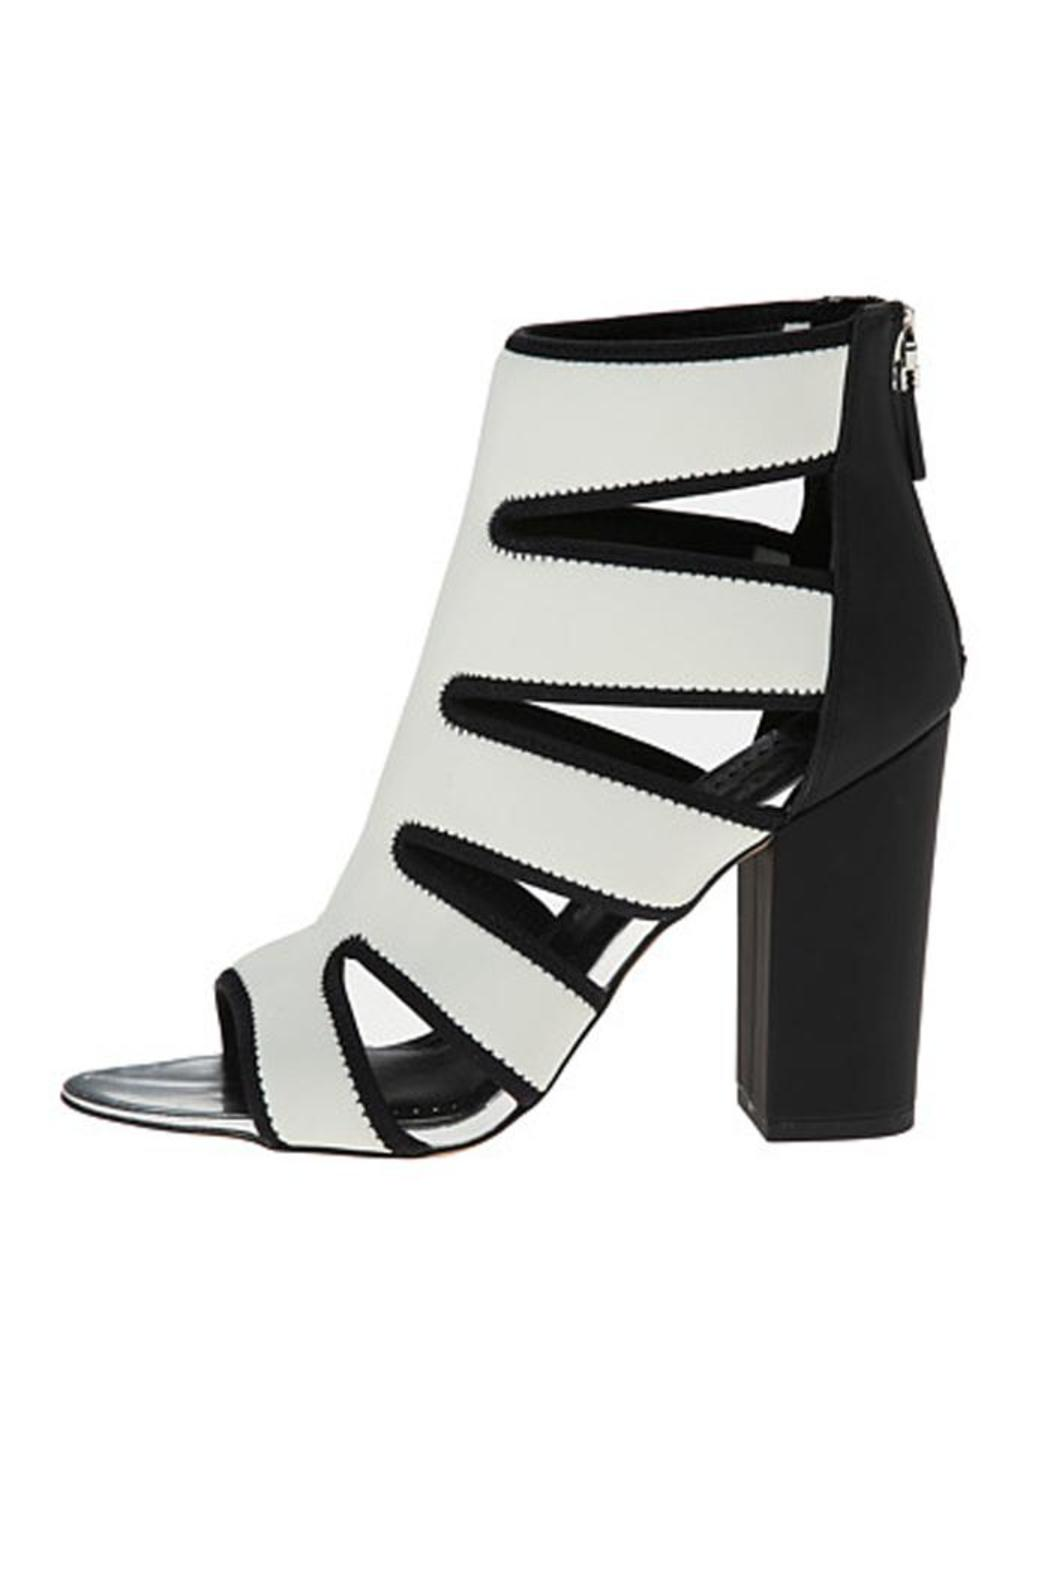 aadad4a874c9d Circus by Sam Edelman Caged Block Heel from Cleveland by HAVEN ...